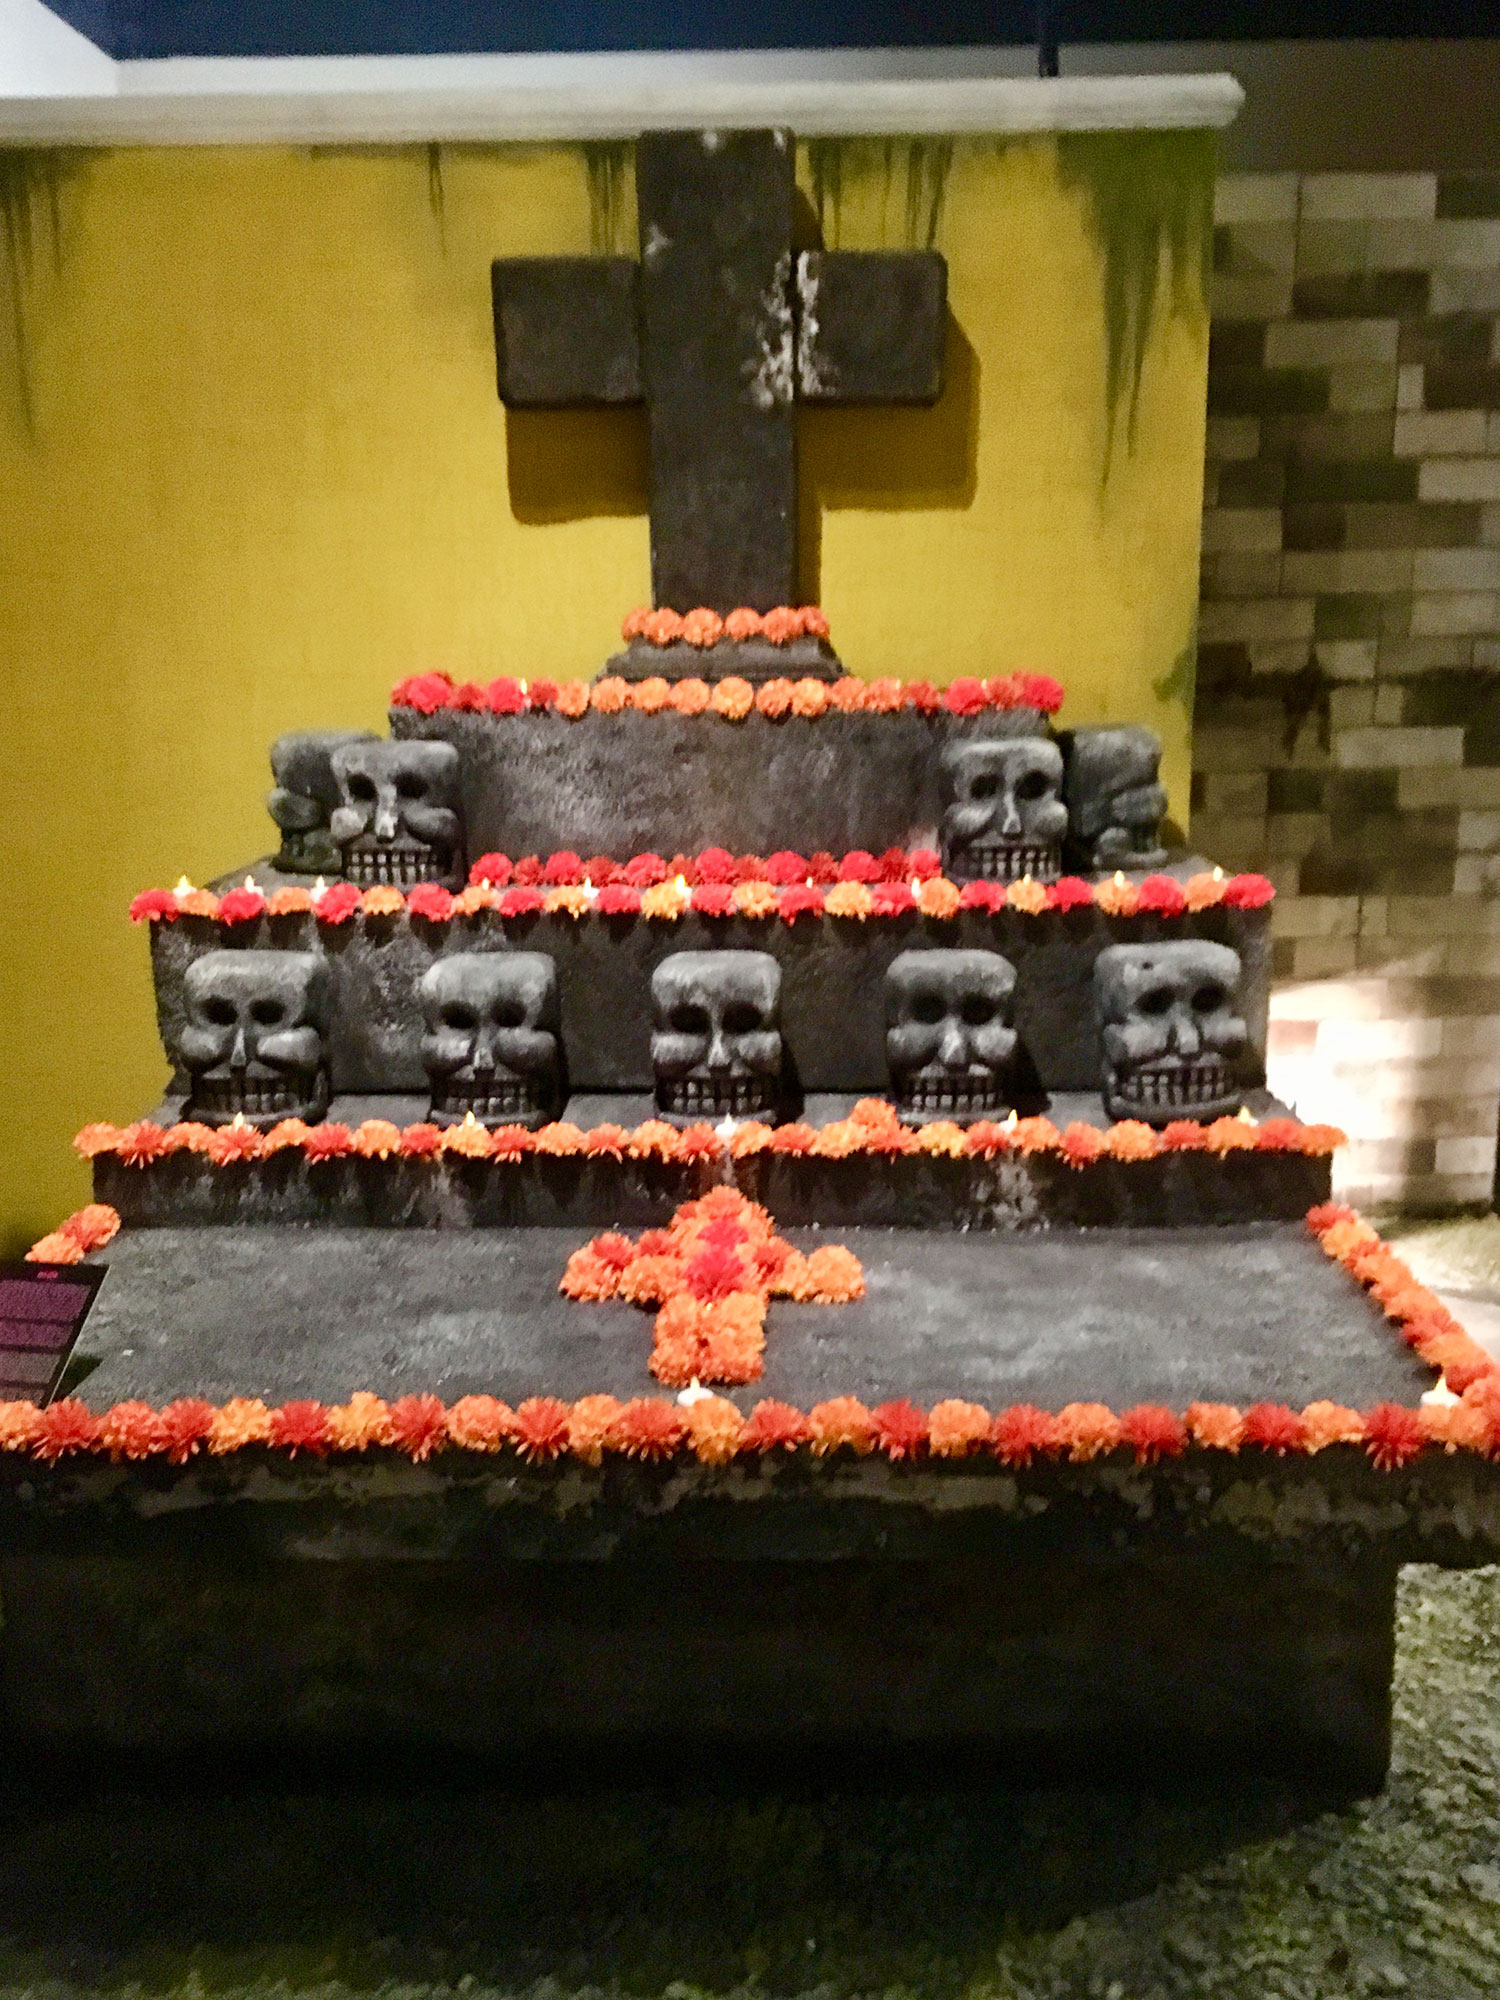 A burial made of lava stone in Mexico.